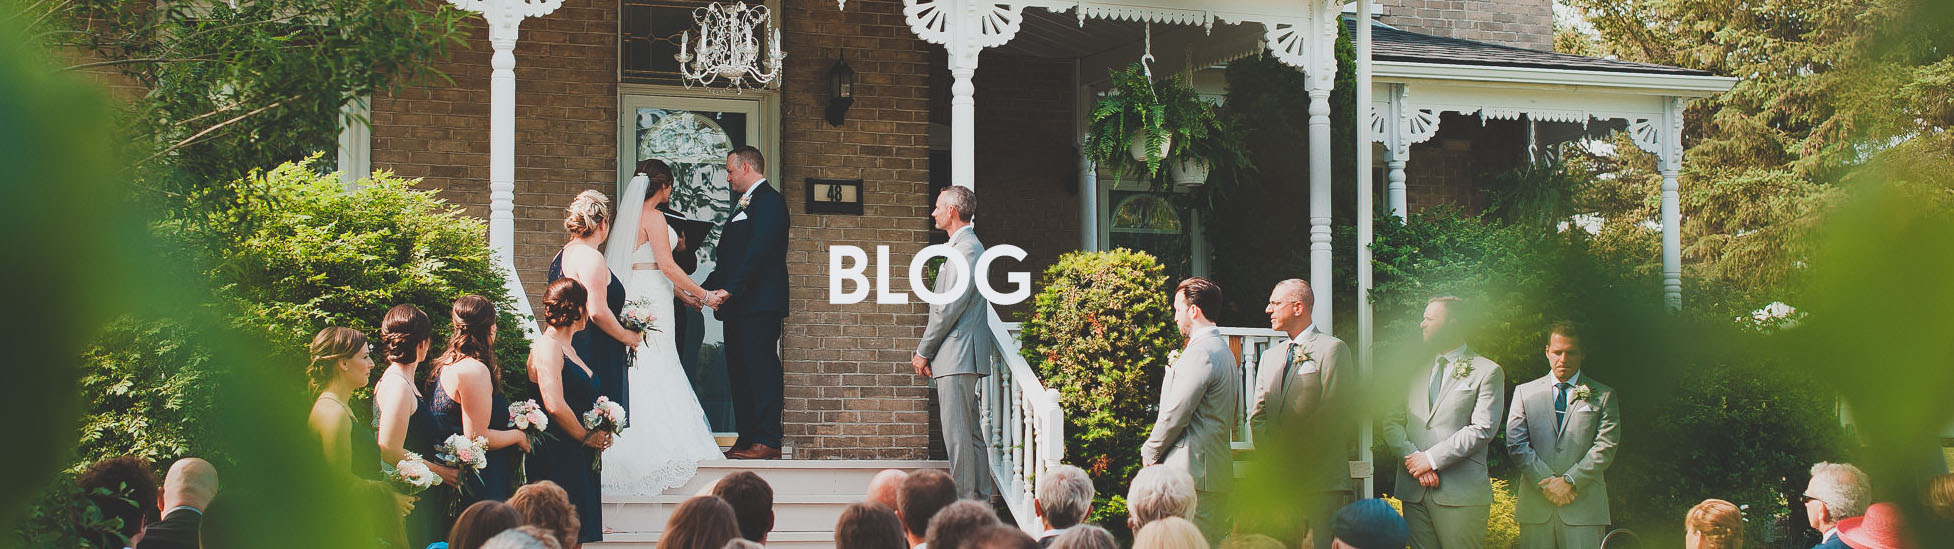 Real weddings and wedding advice on the blog!